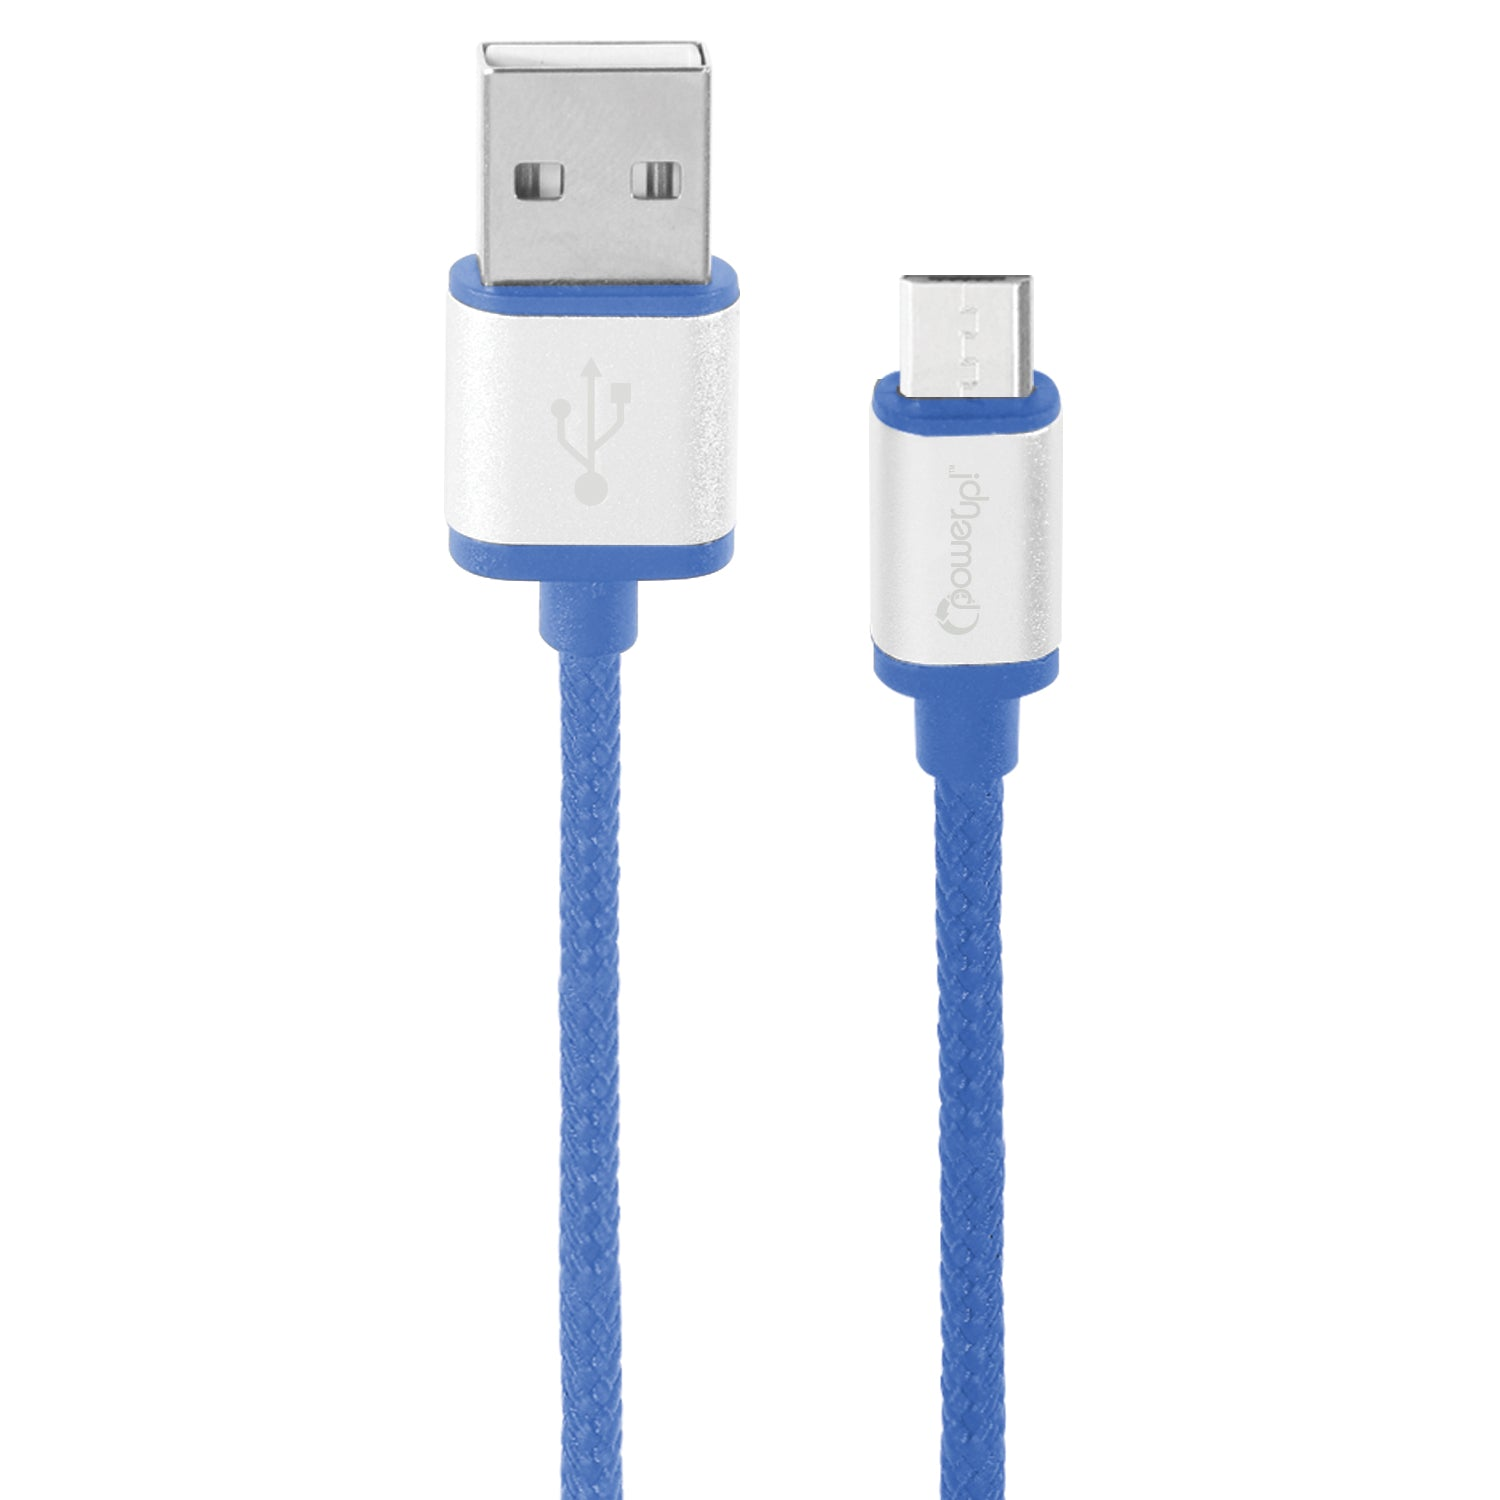 4ft USB A to Micro USB Braided Cable